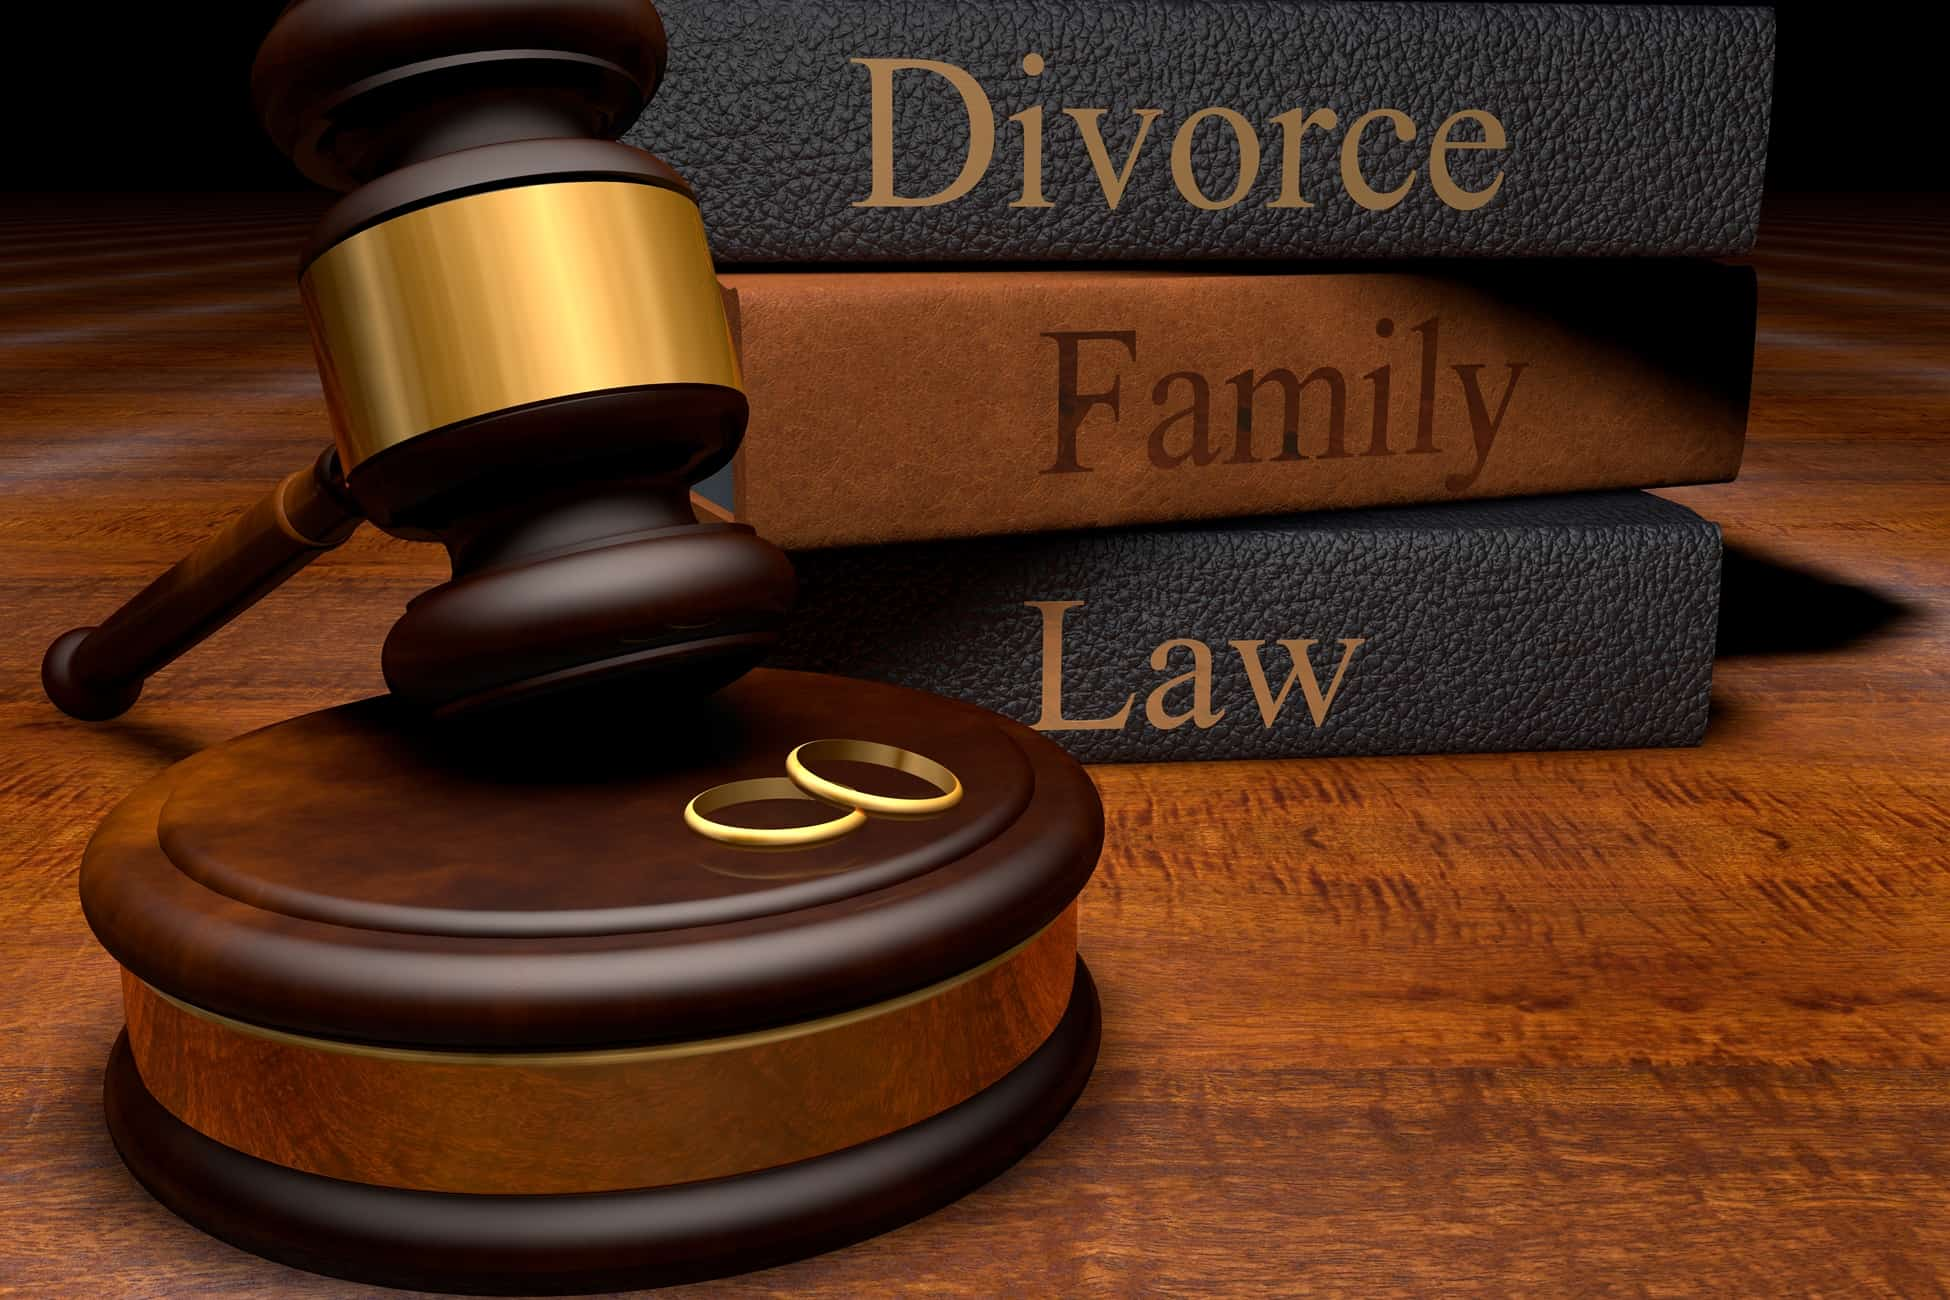 Divorce Family Law